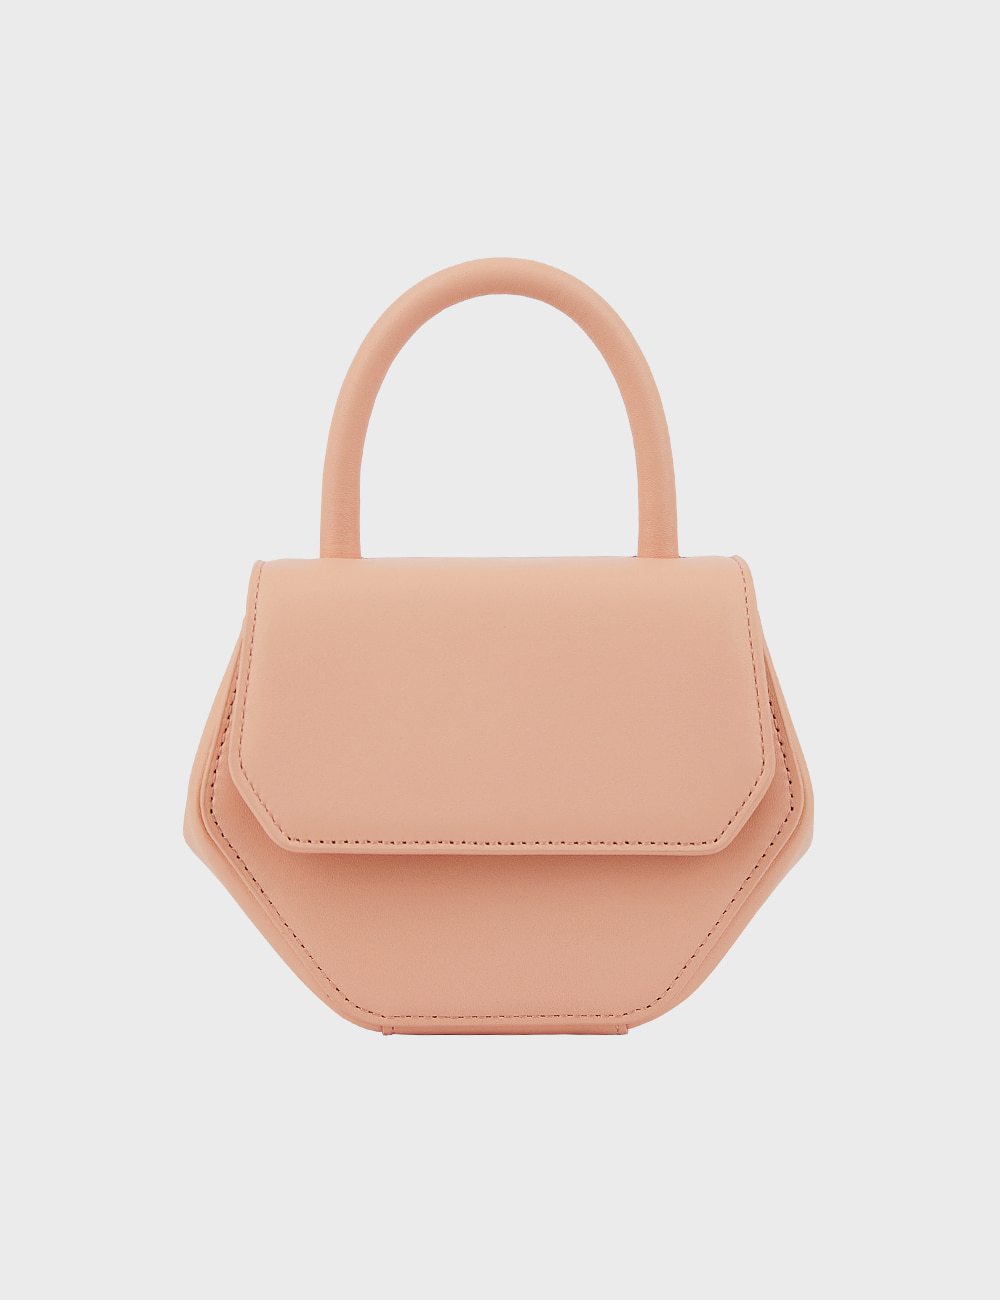 MAISON246,246 MAGOT SMALL BAG - BABY PINK,No.246